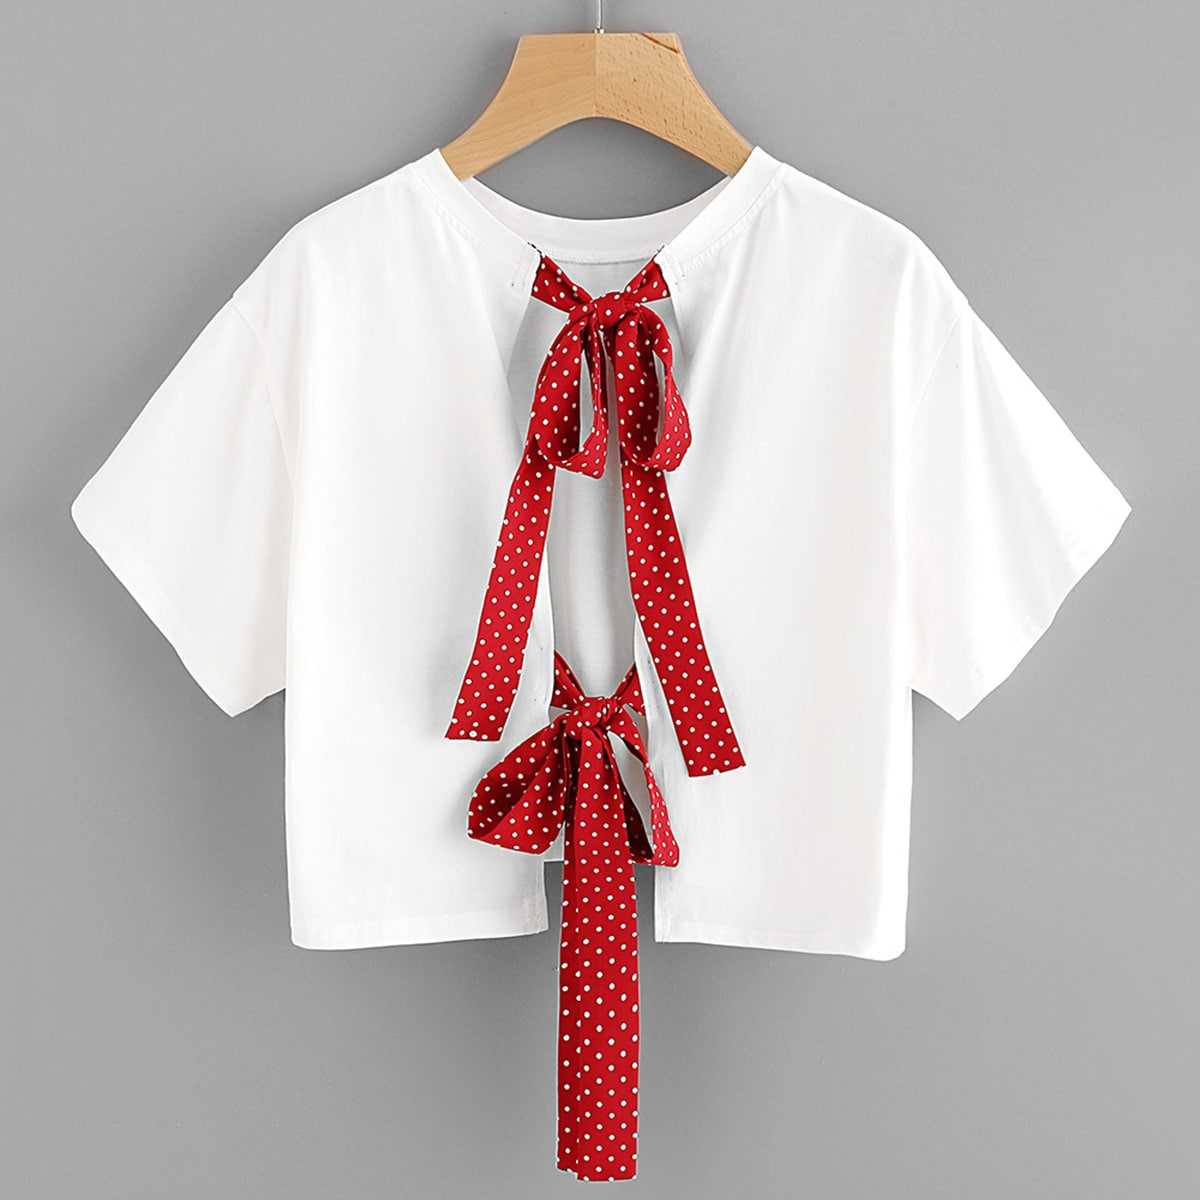 Polka Dot Bow Tie Back Crop Top in White by ROMWE on GOOFASH